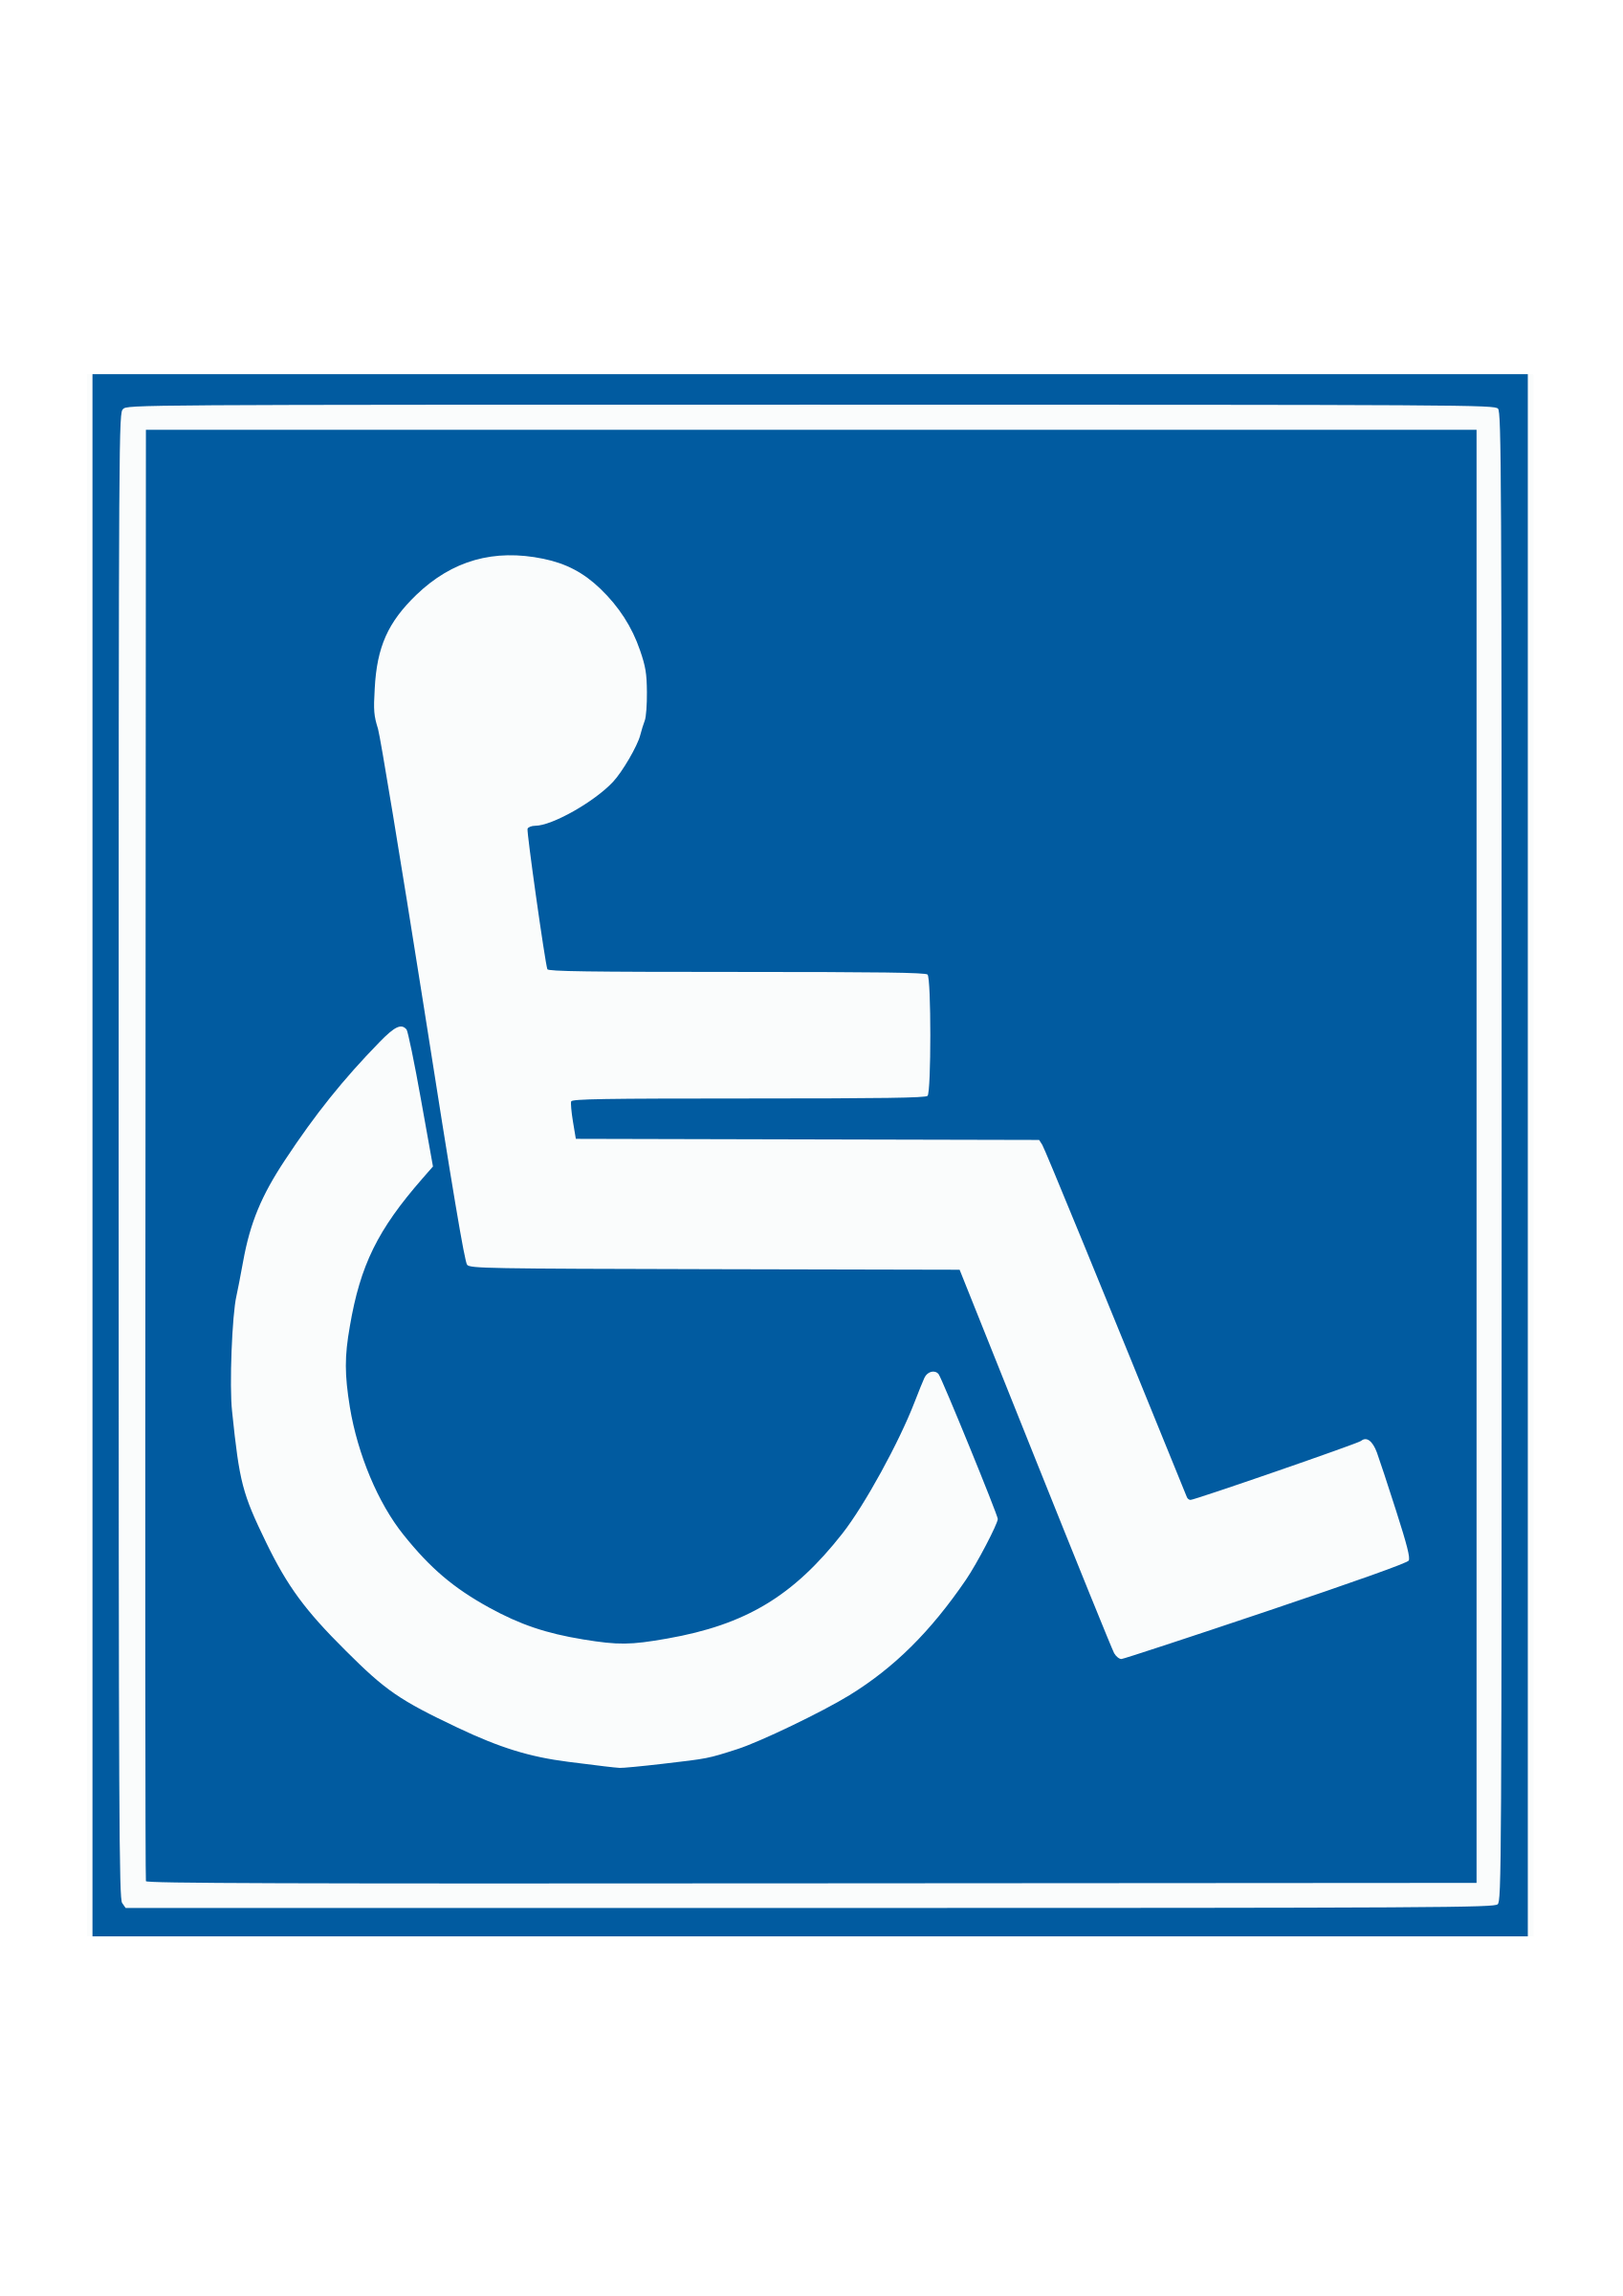 Handicap sign by Wice